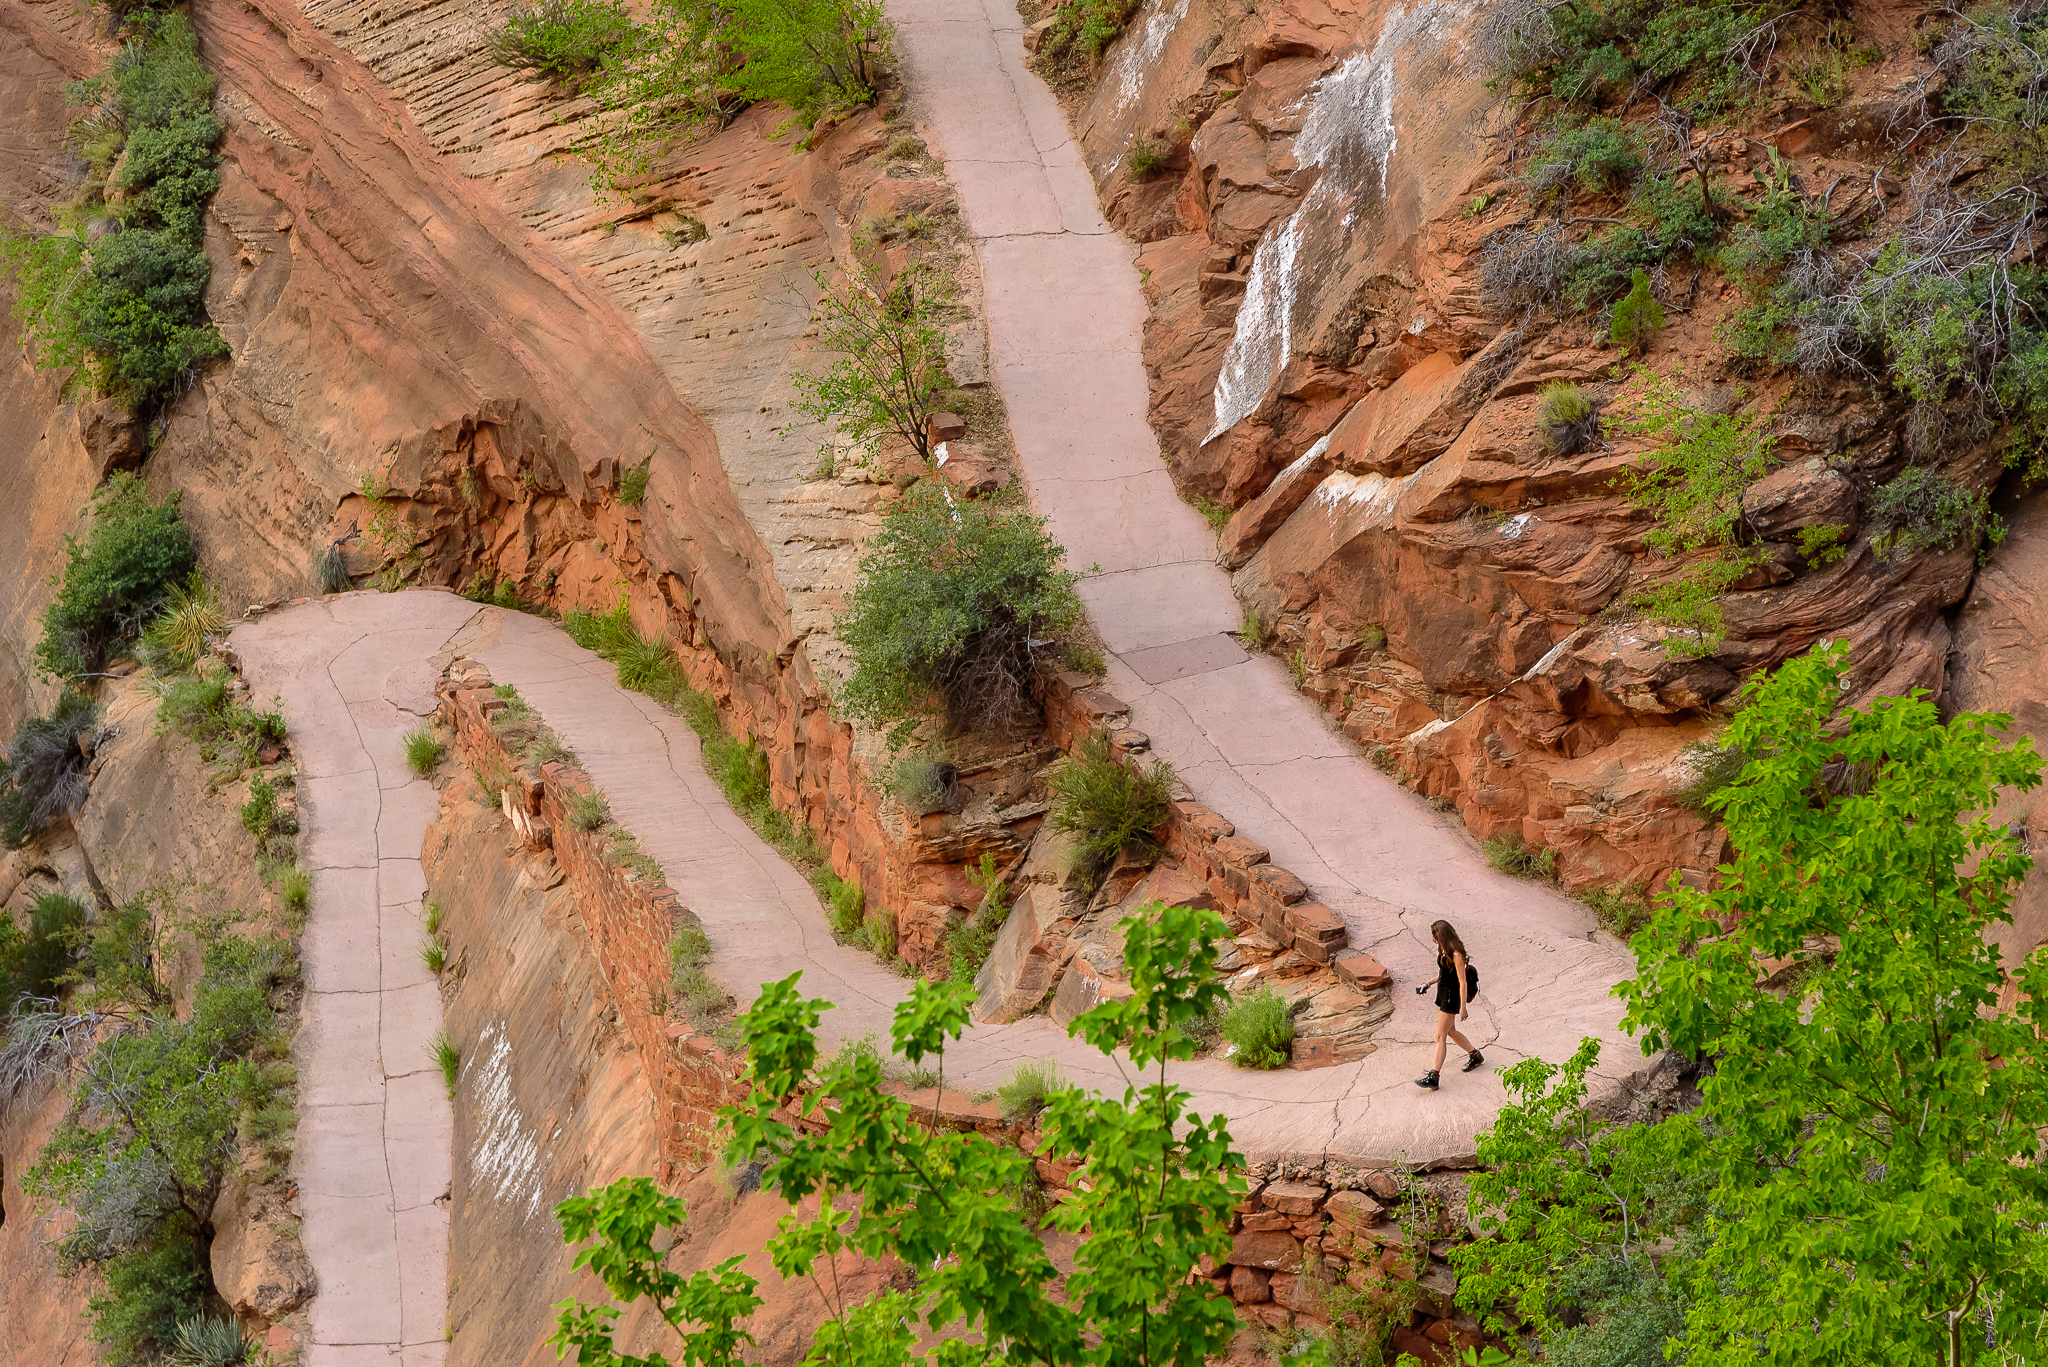 The path of Angels, but yet far from their Landing. Zion National Park, UT.